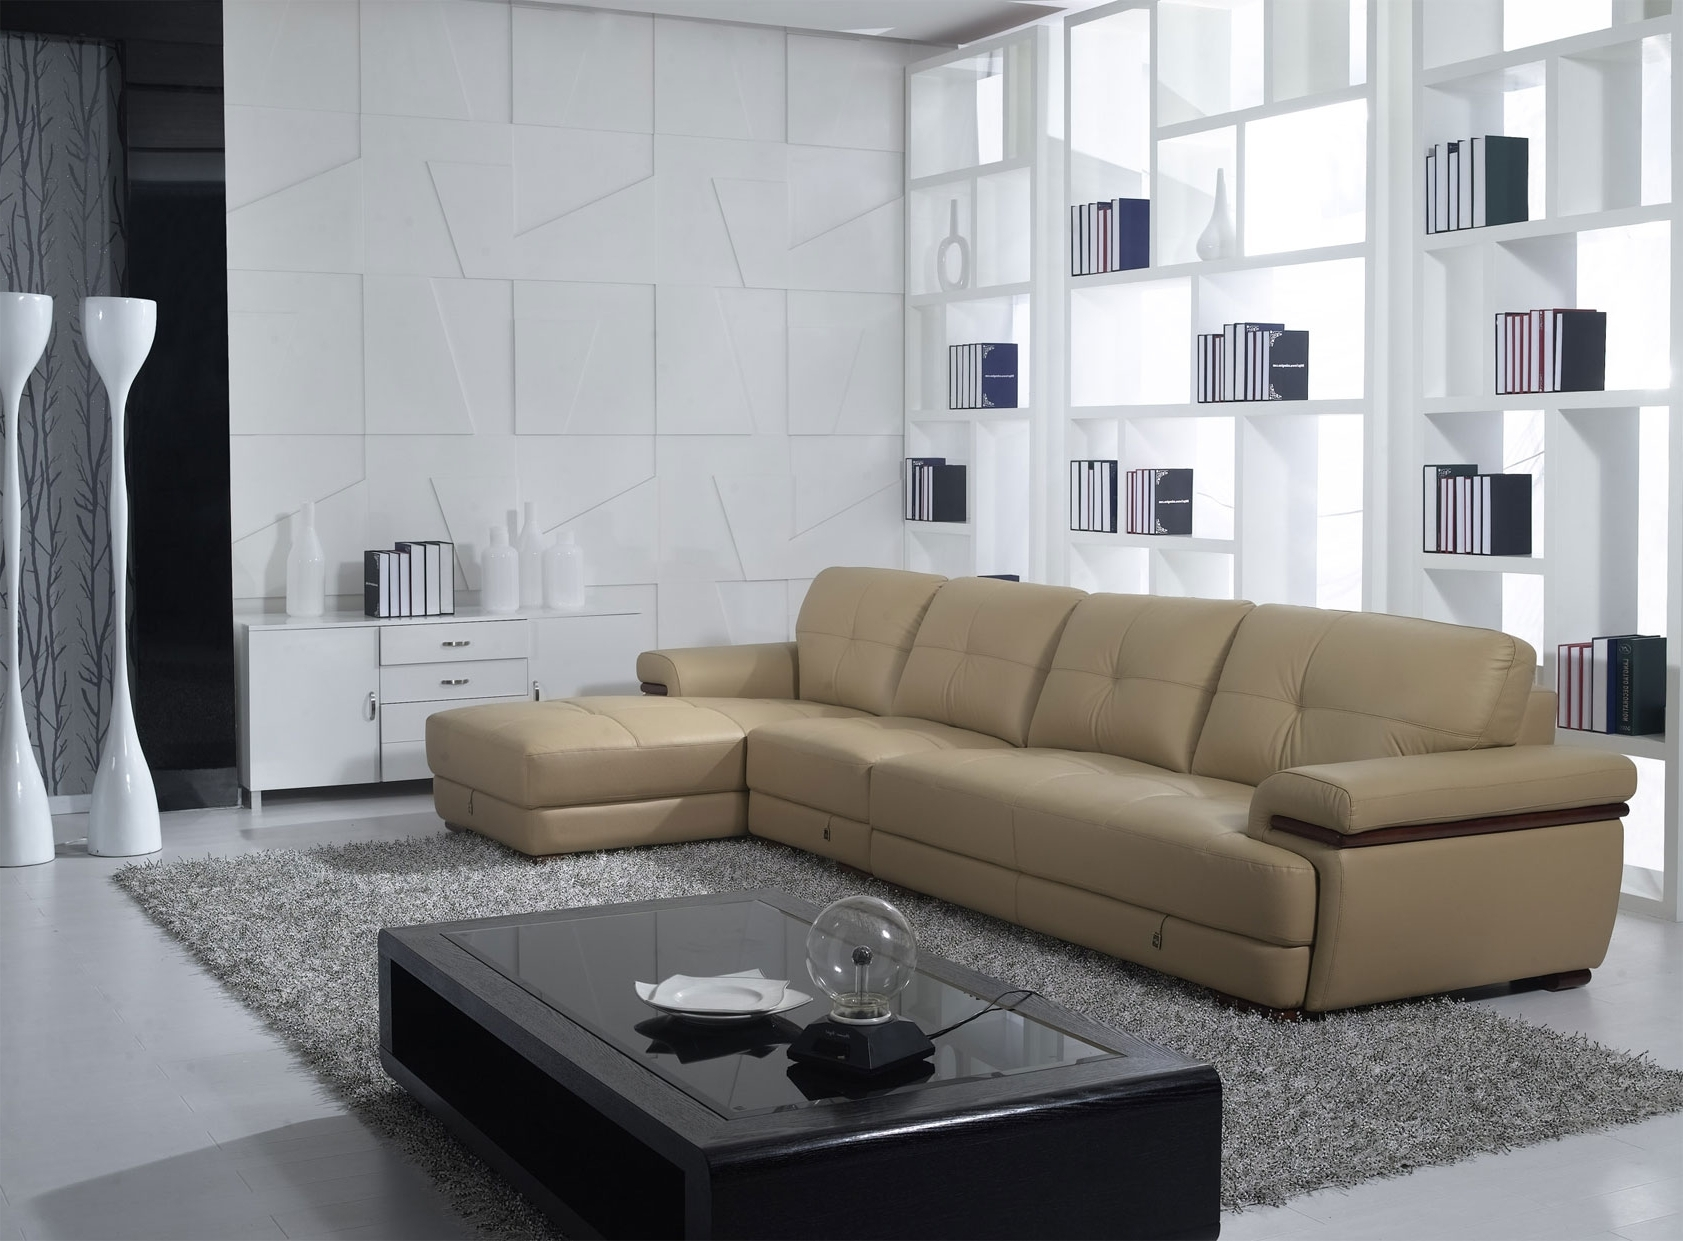 Fancy Quality Sectional Sofas 15 Sofas And Couches Ideas With With Regard To Latest High Quality Sectional Sofas (View 3 of 15)